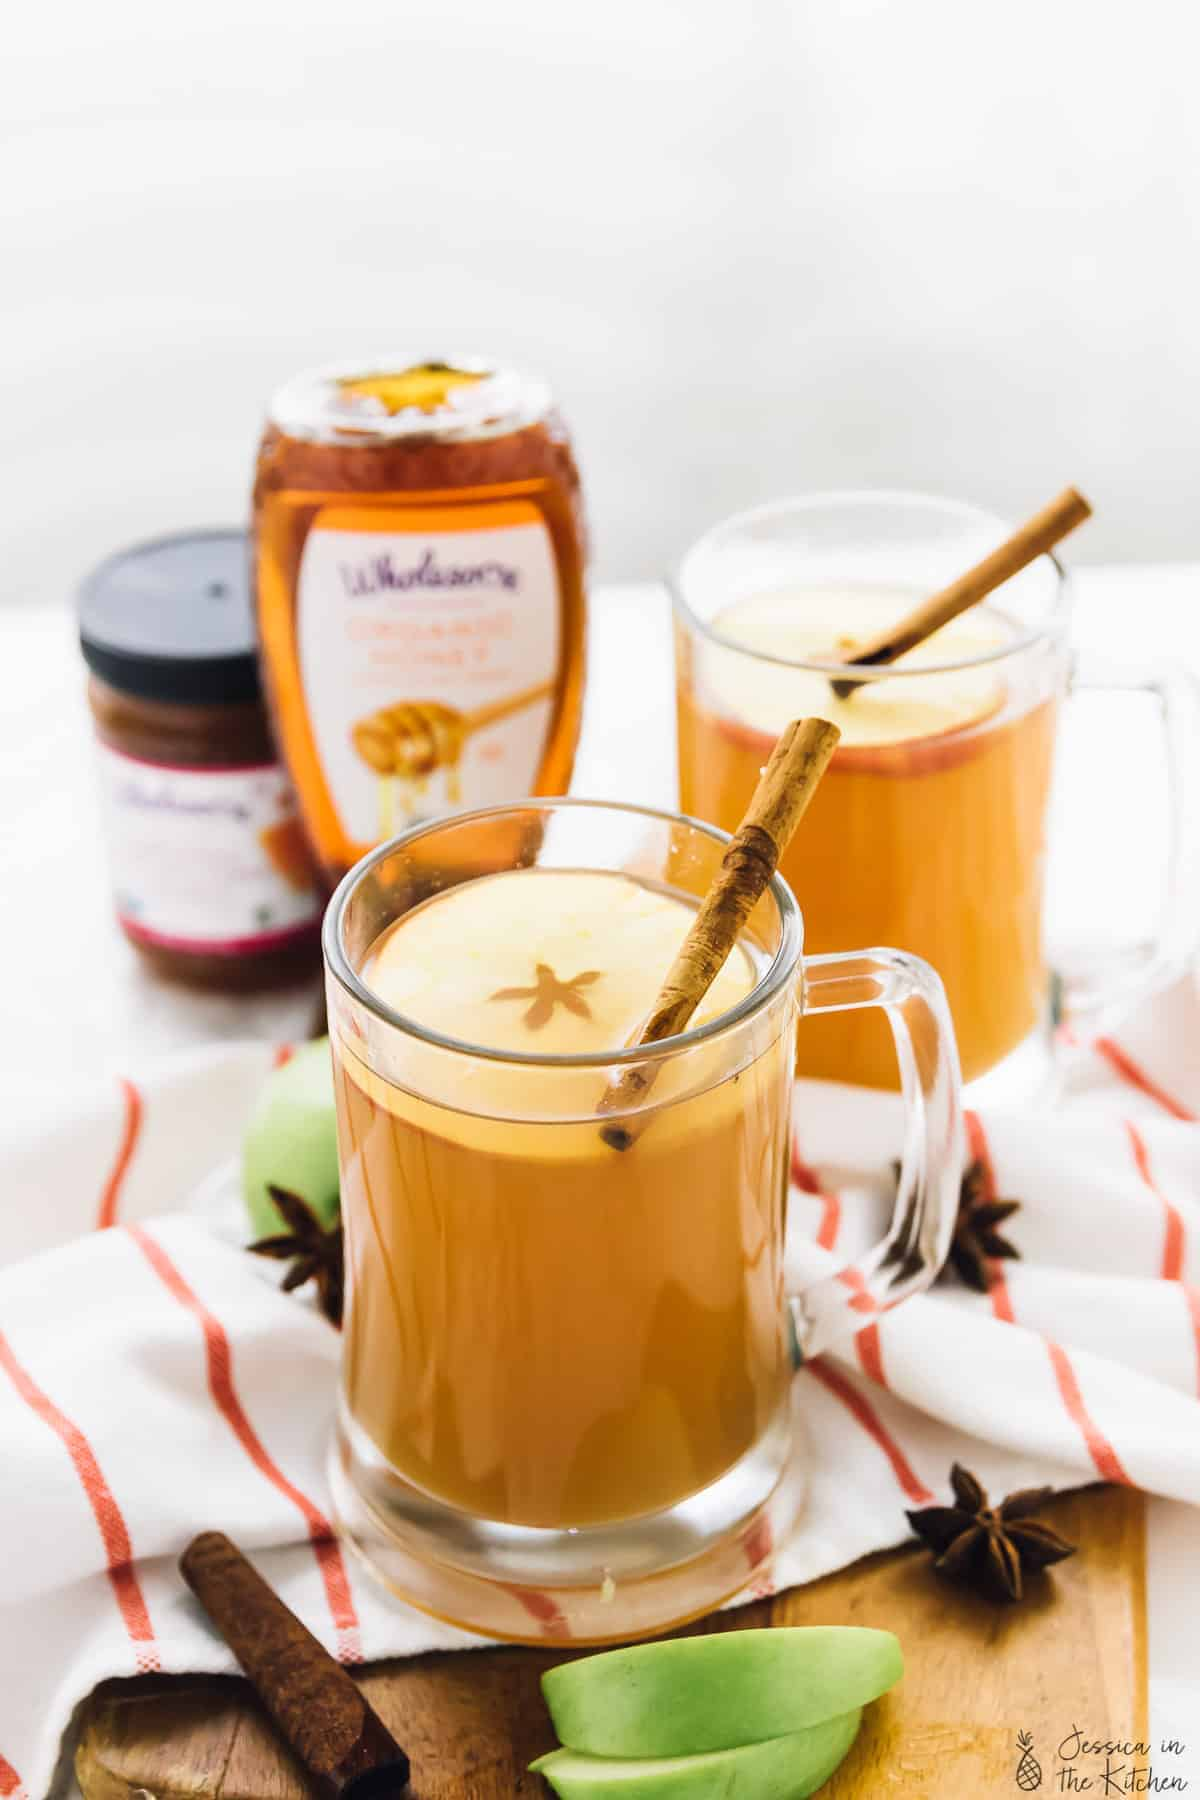 This Warm Spiced Apple Cider will warm you up this holiday season! It's made in your slow cooker, makes your house divinely fragrant, and tastes absolutely amazing! via https://jessicainthekitchen.com